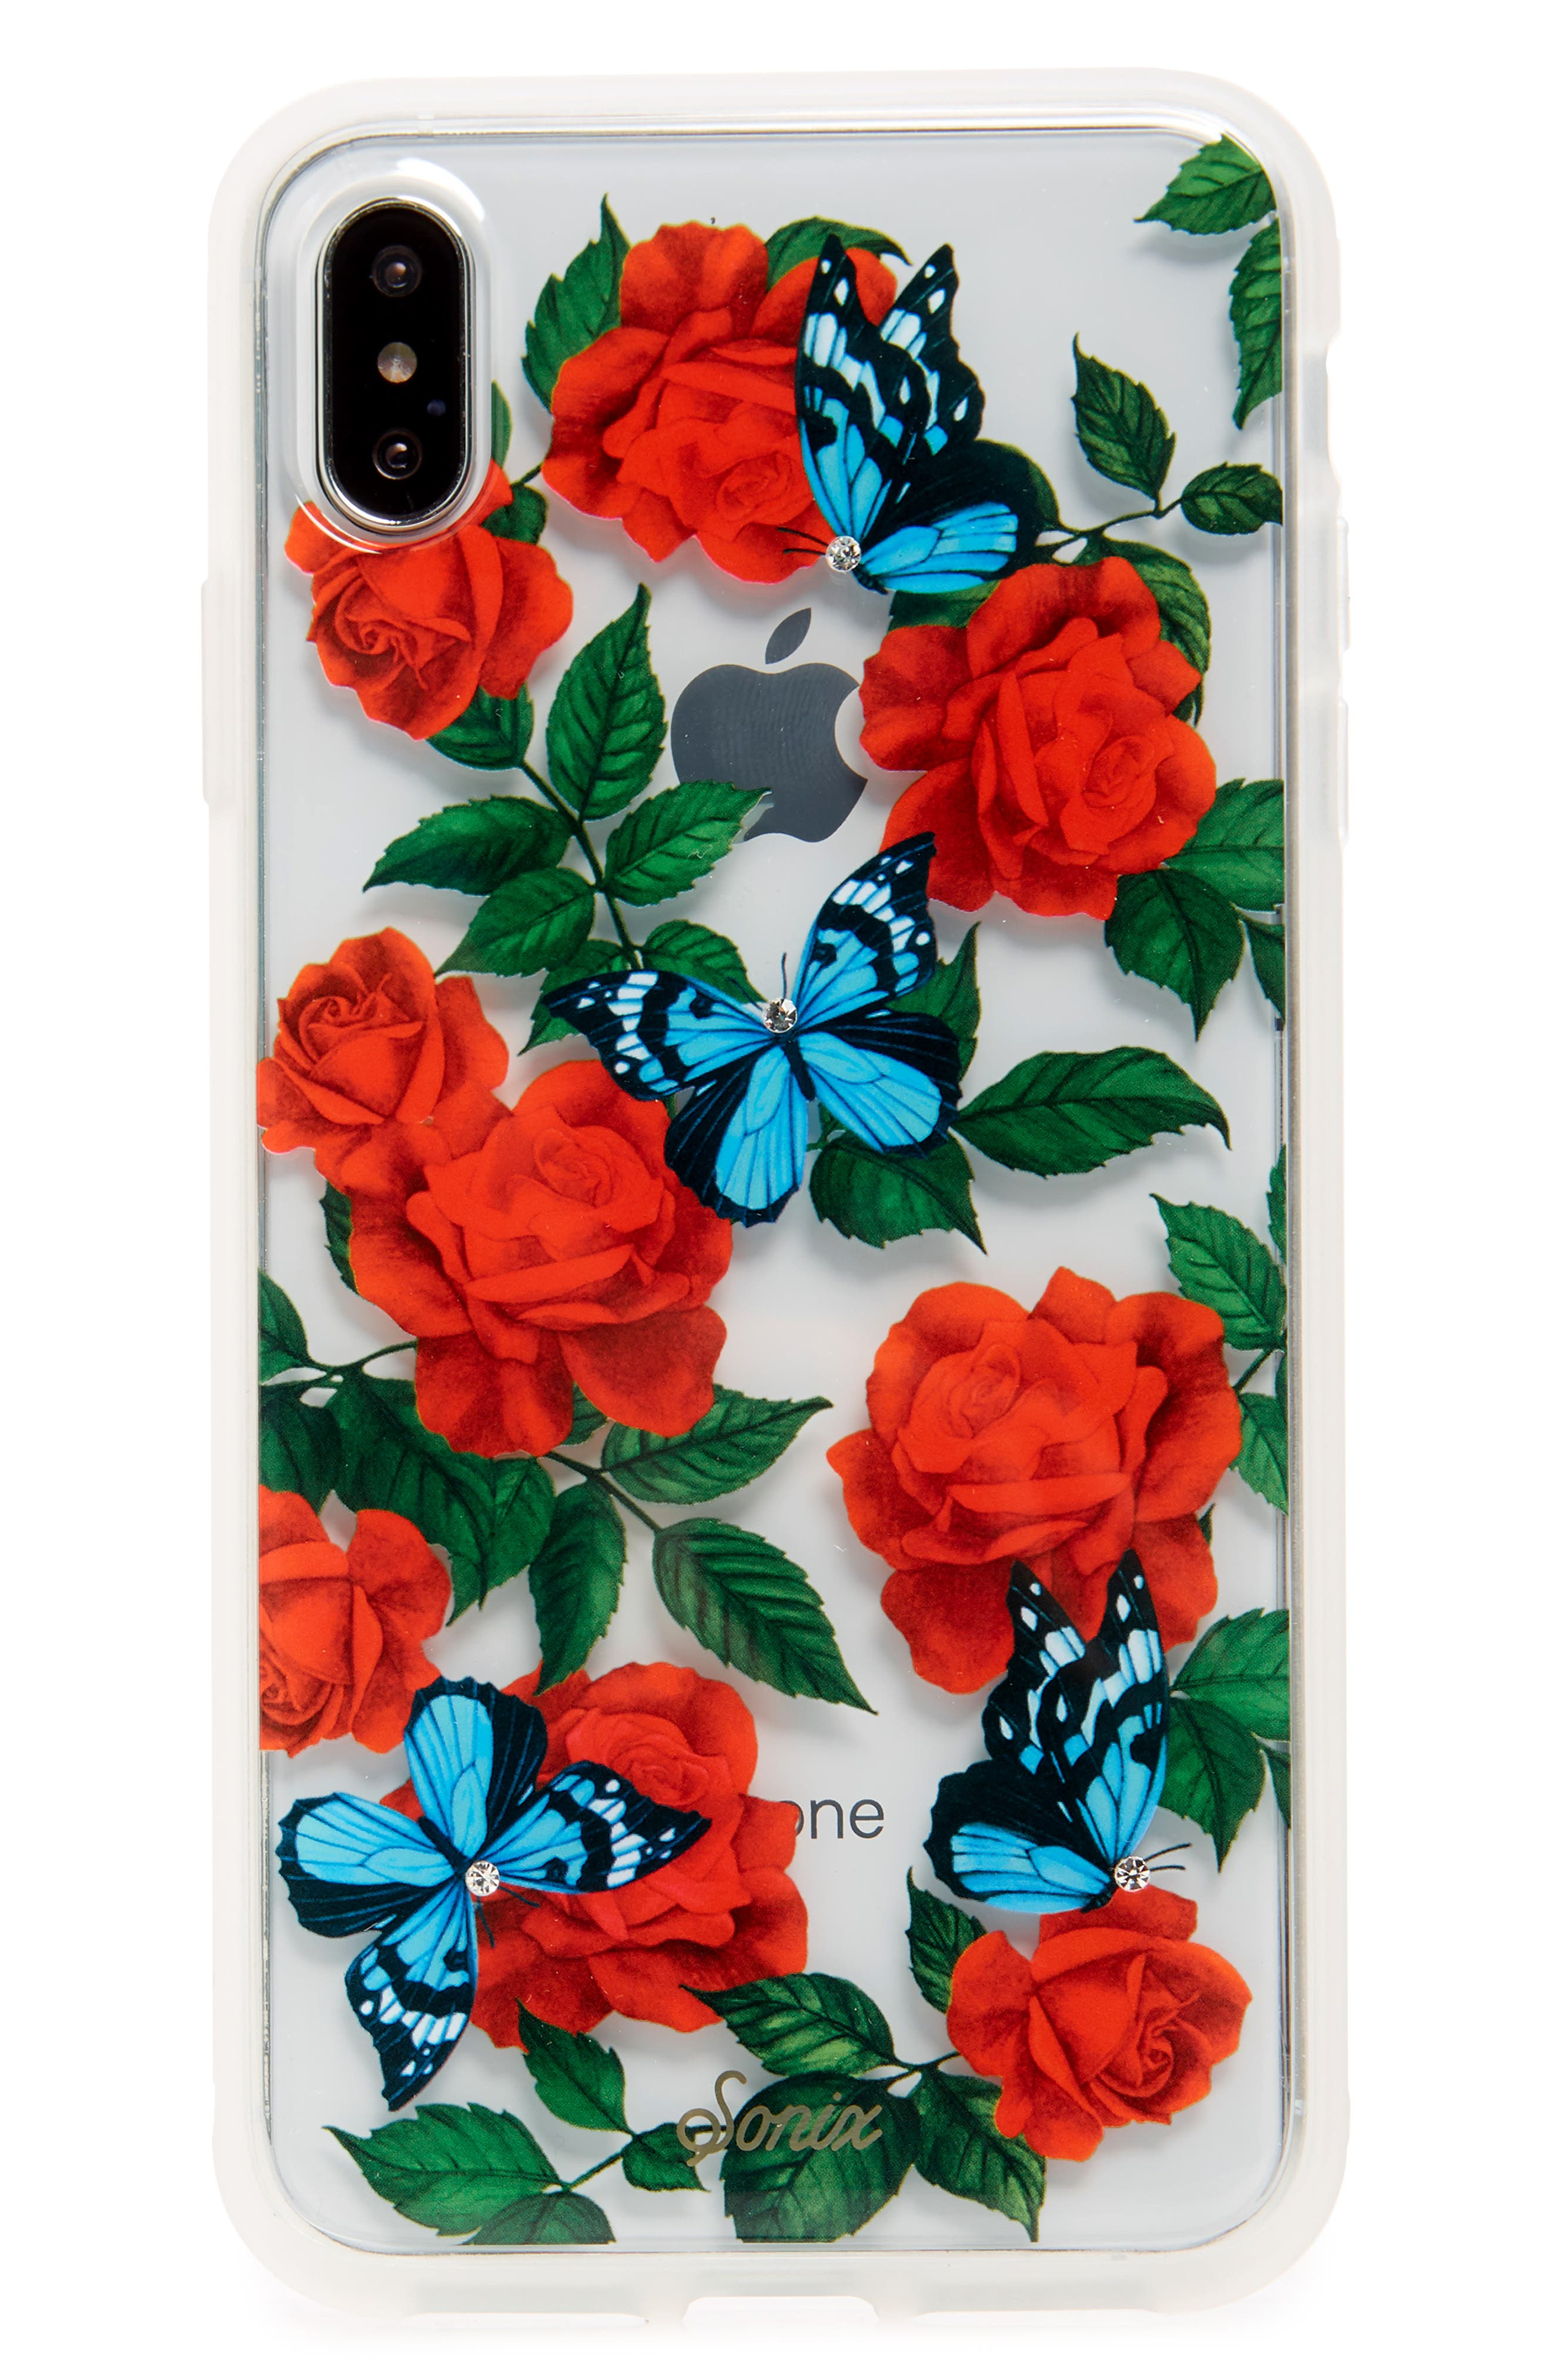 Image of SONIX Butterfly Garden iPhone X Case